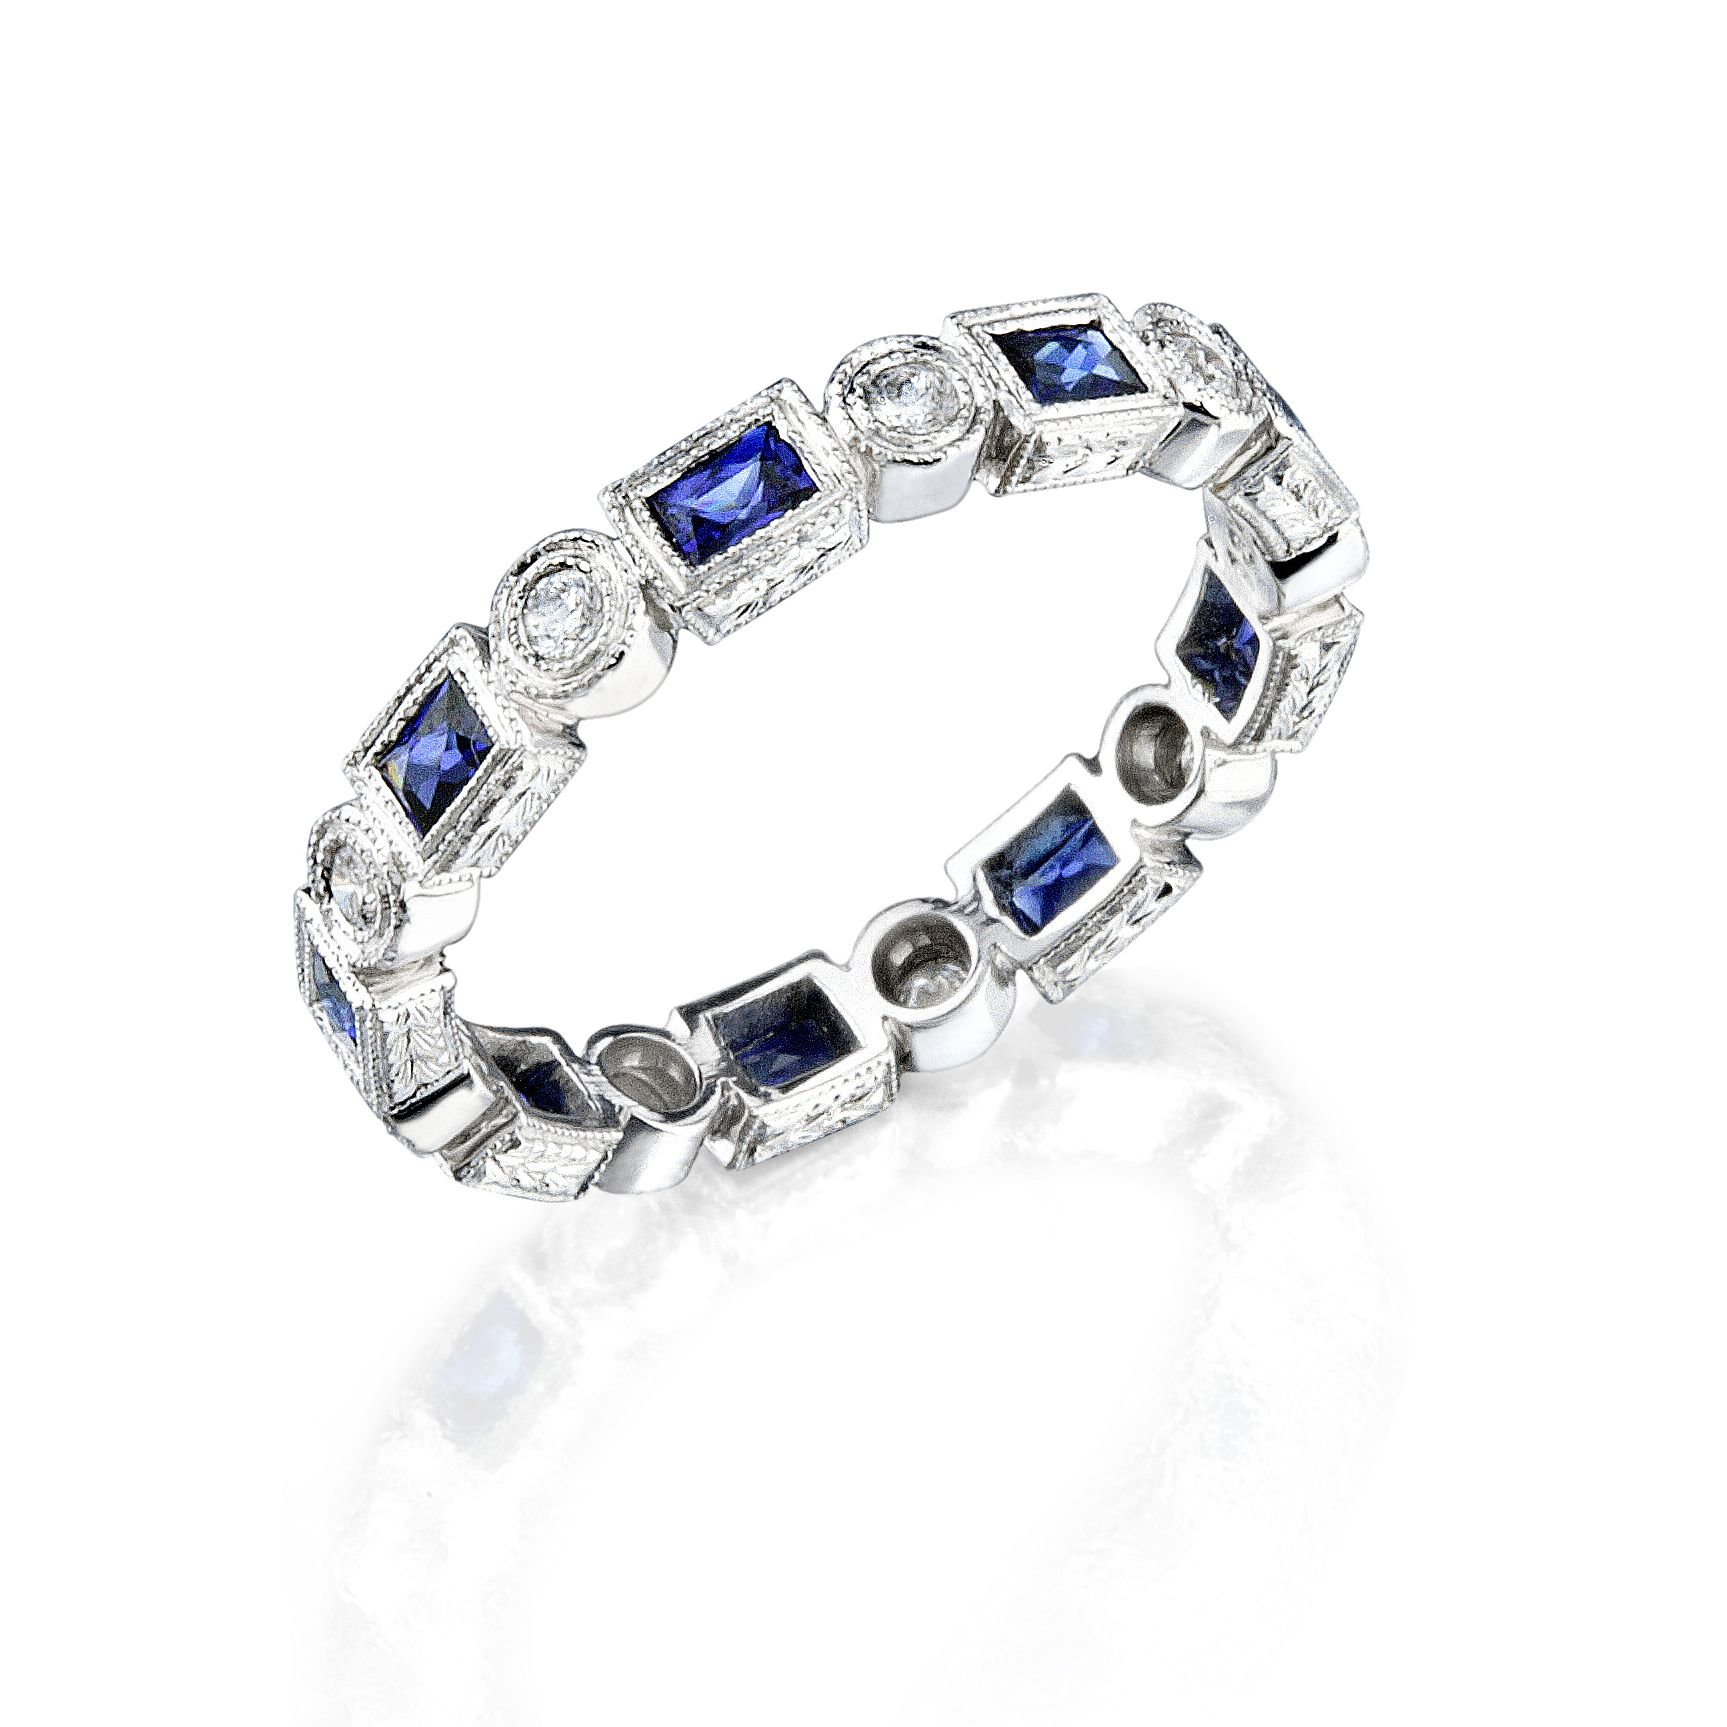 diamonds ct stone blue from yellow gemone engagement online ring diamond gold product natural gemstone certified sapphire bands